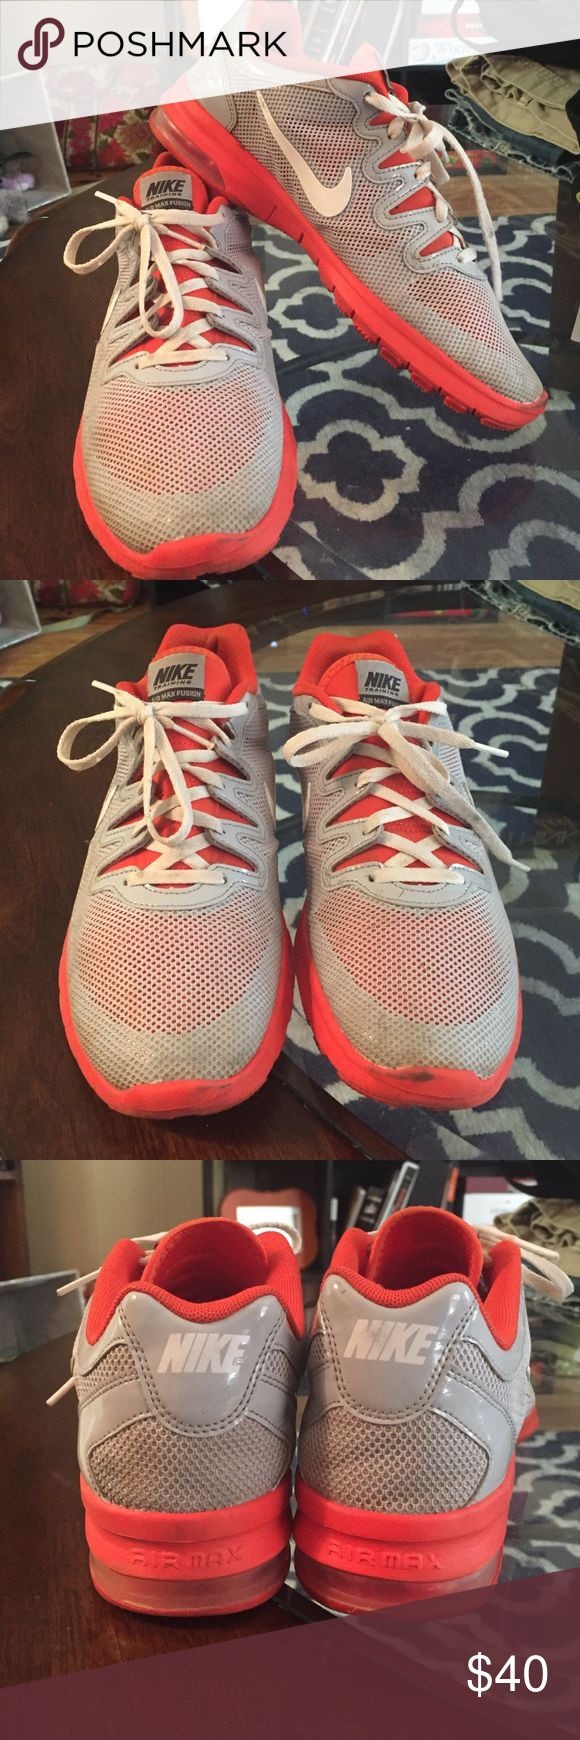 Women's Nike Air Max Fusion Size 8 Women's Nike Air Max Fusion - Orange, Grey, and White - Gently loved - No trades, please! Nike Shoes Athletic Shoes